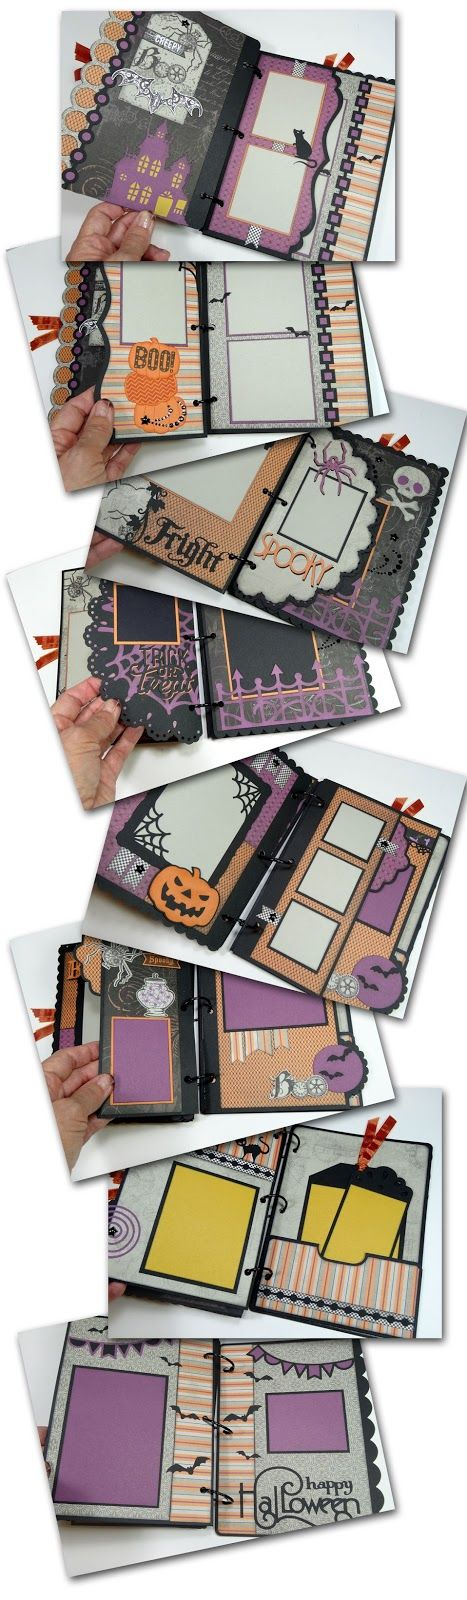 Halloween Mini Album Tutorial for this fun project using Close To My Heart's Nevermore paper pack and embellishments.